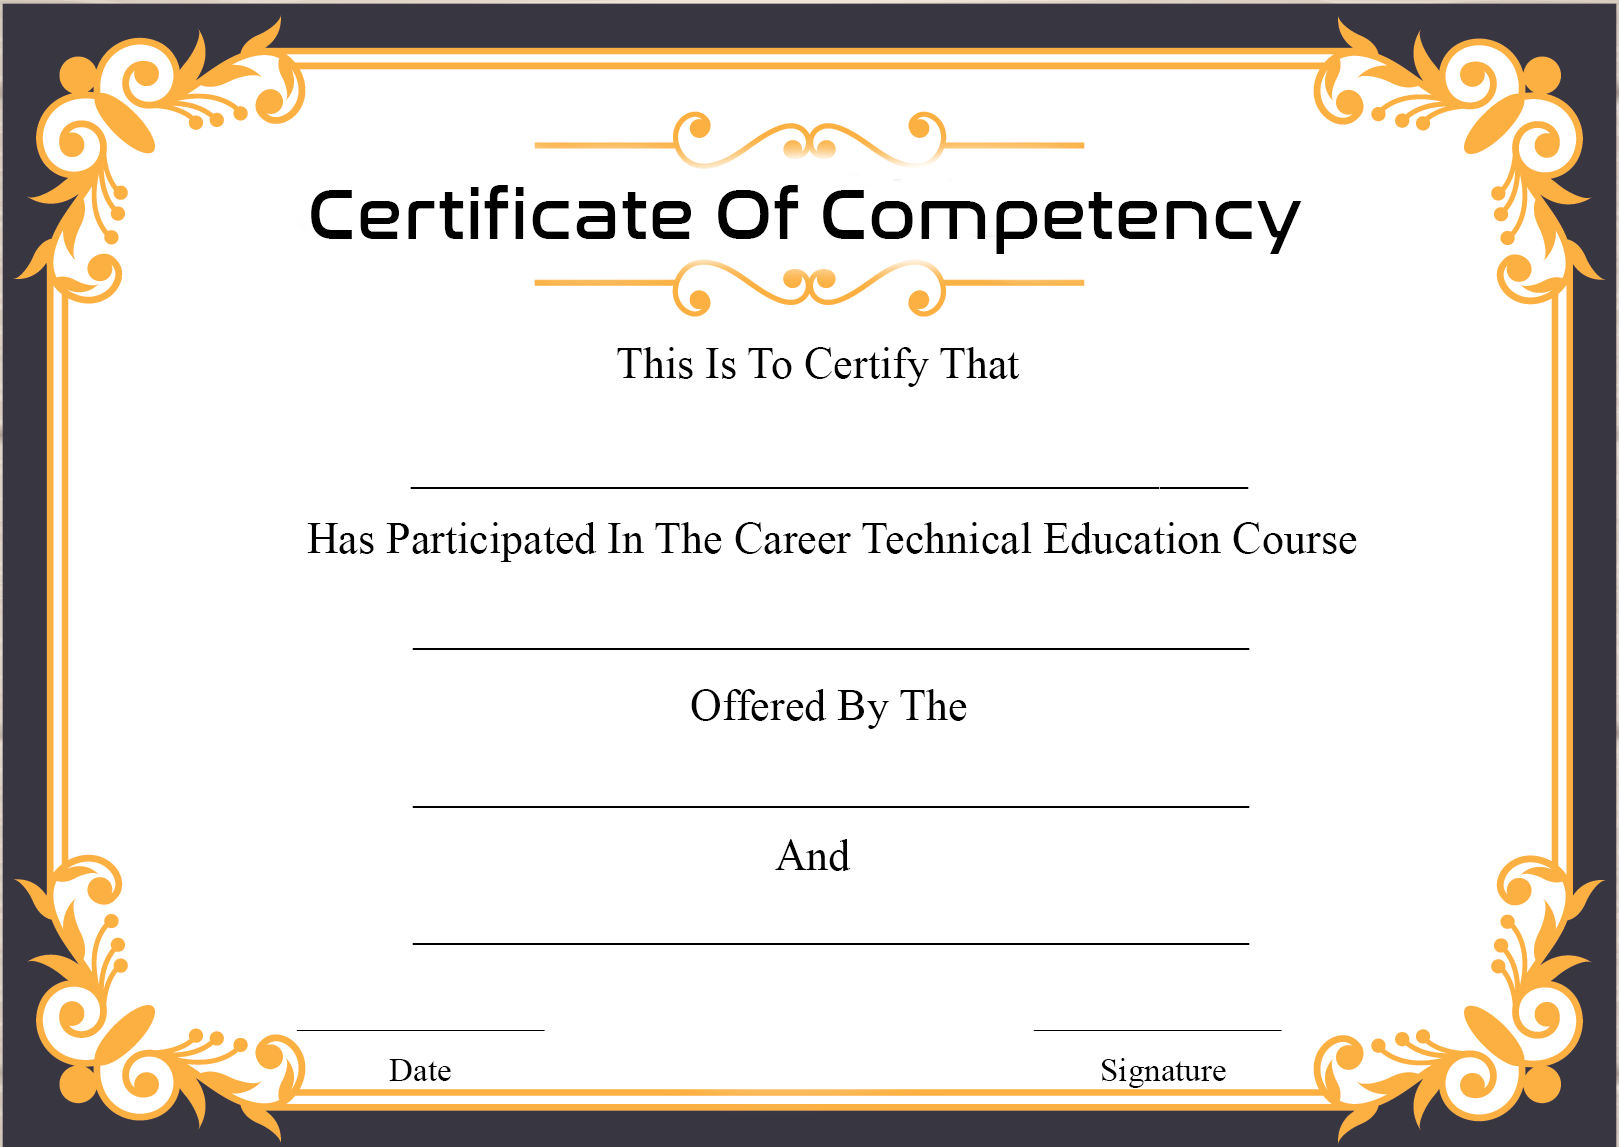 Certificate of Competency For Engineers